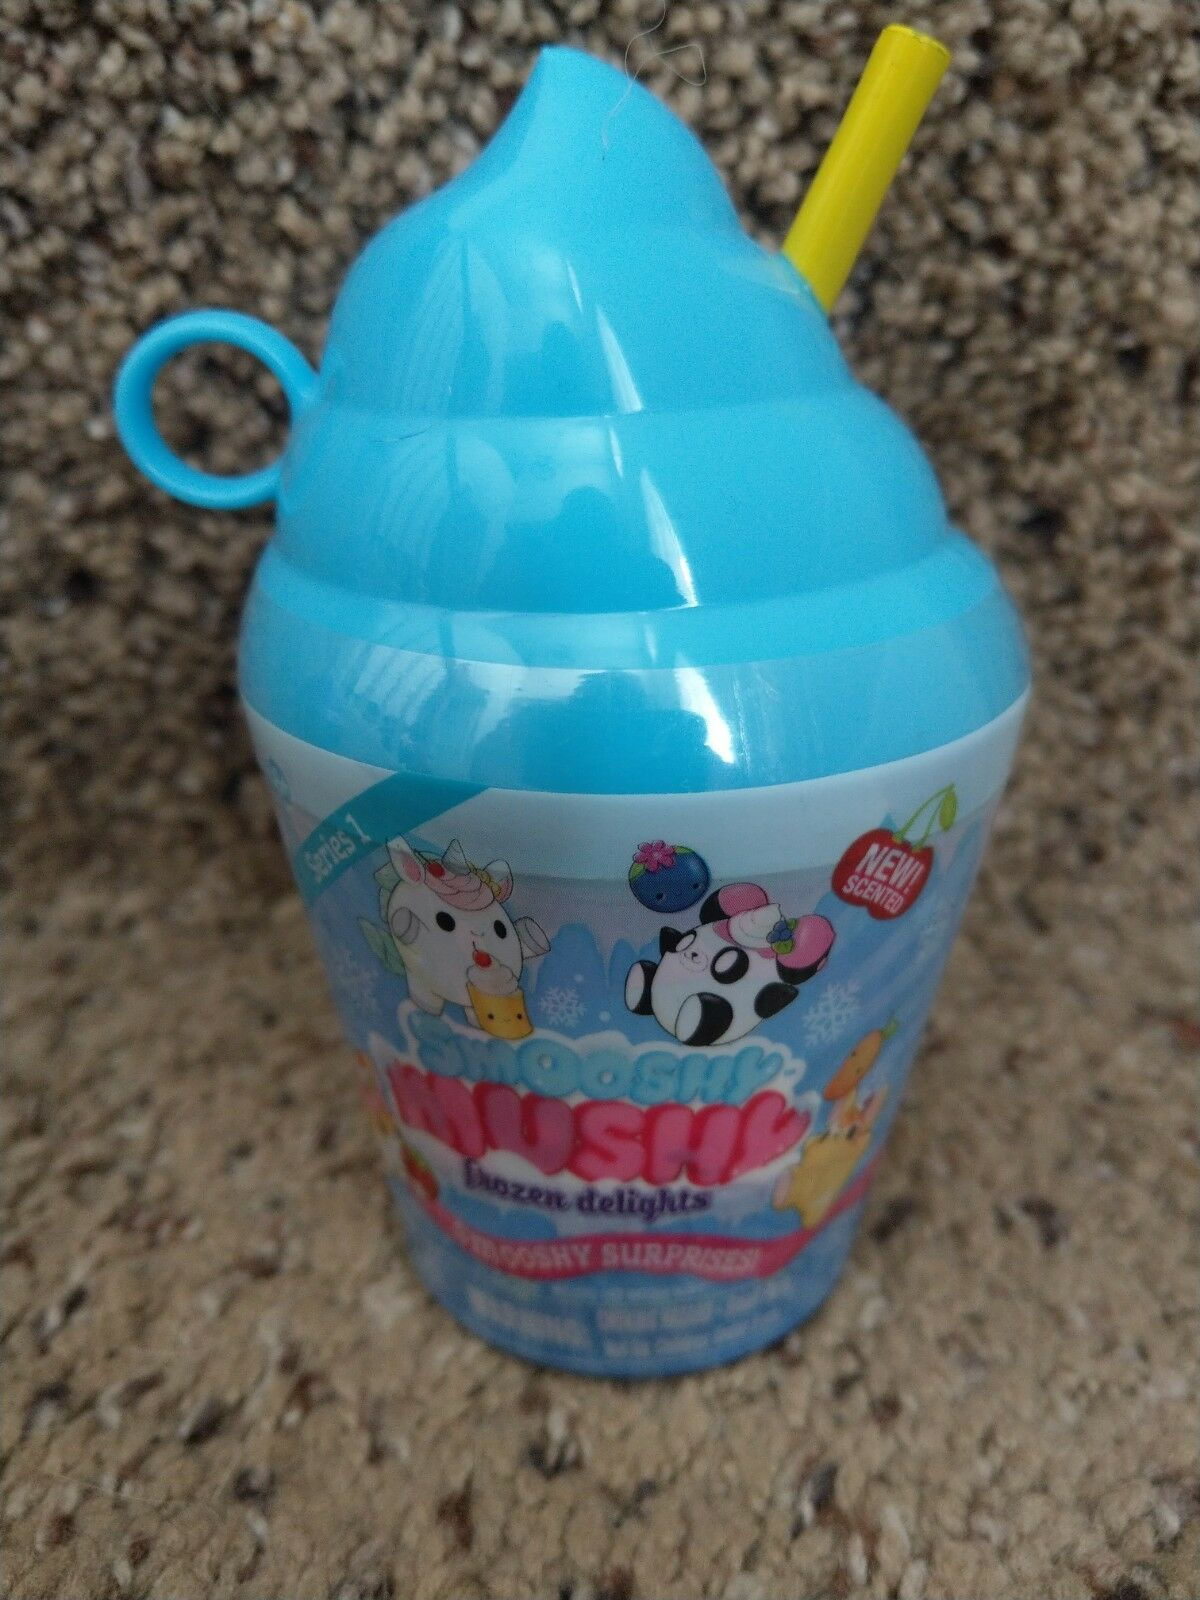 Smooshy Mushy Frozen Delights Series 1 Collectables Unopened Surprise Characters